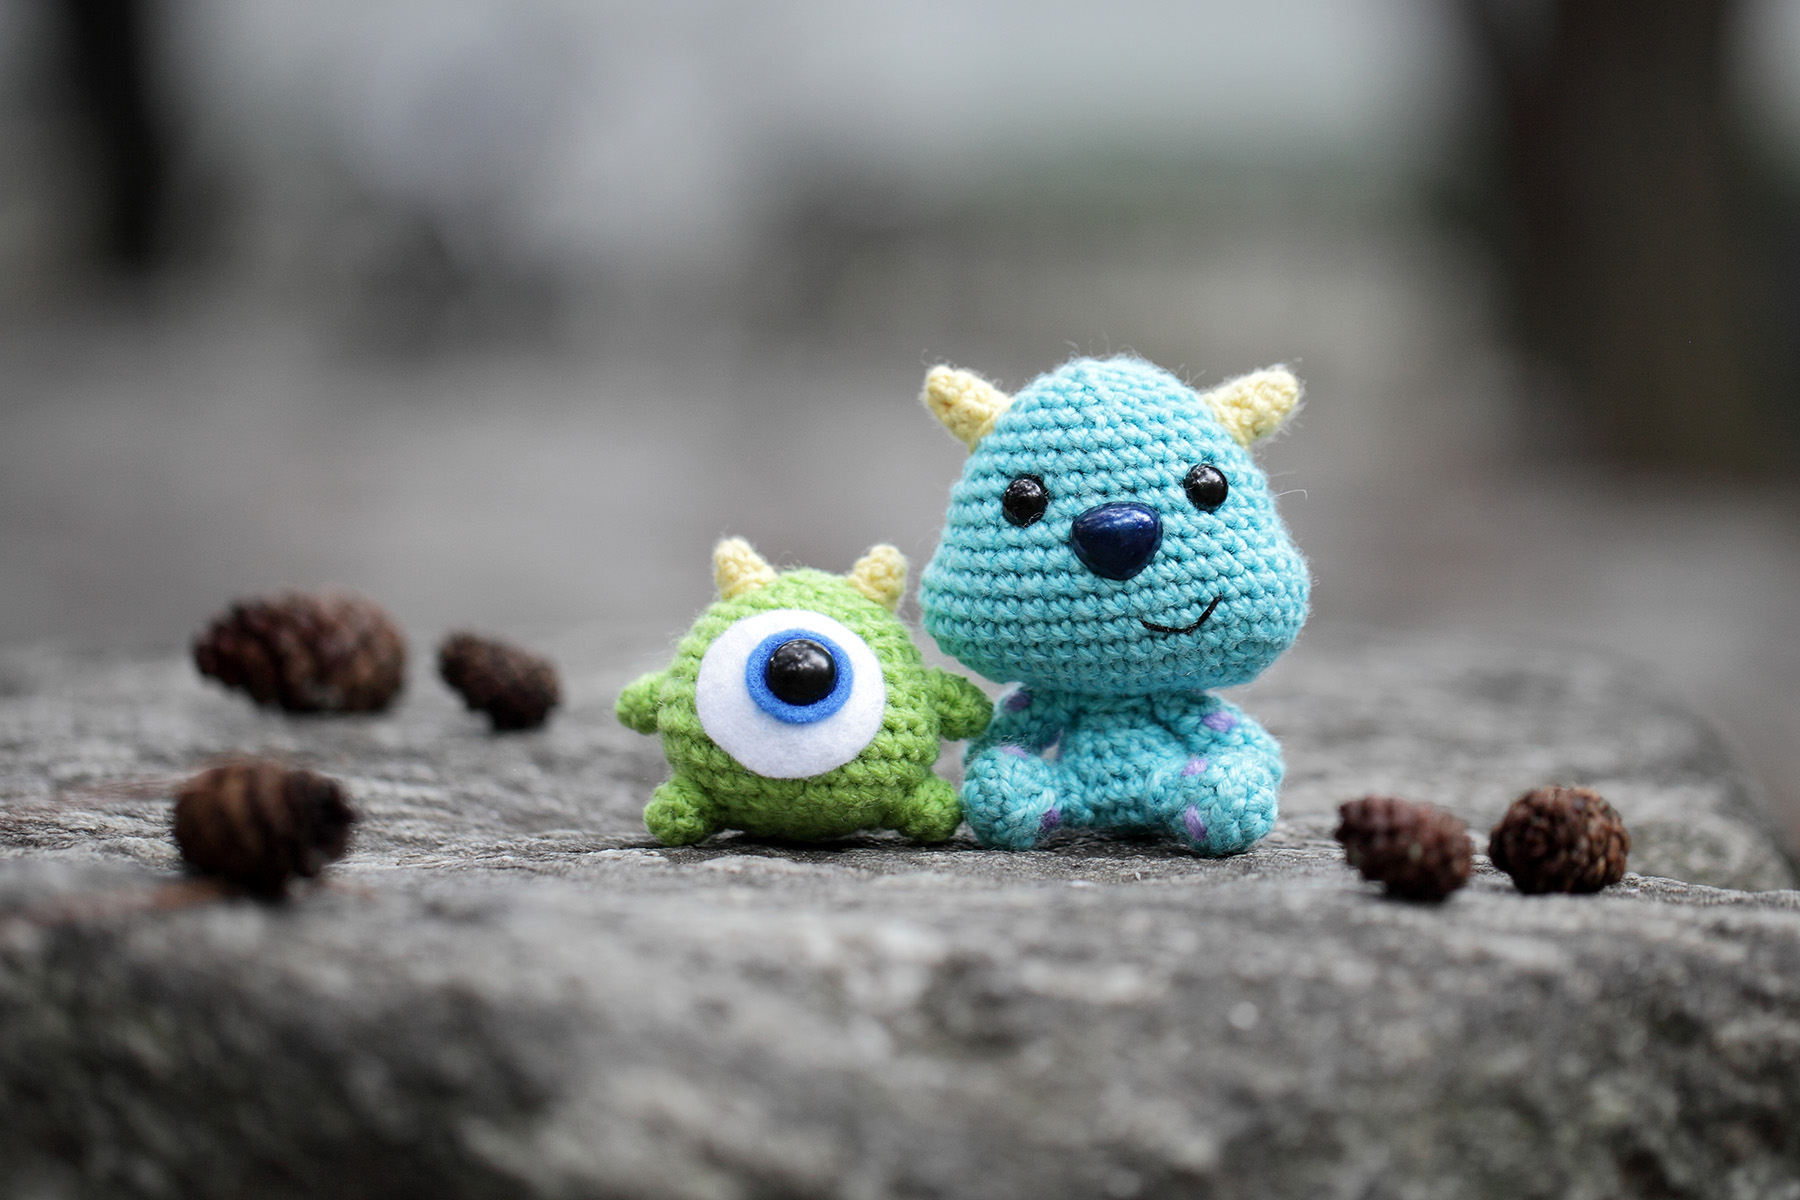 Baby Mike And Sulley From Monsters Inc Amigurumi Fat Face Me